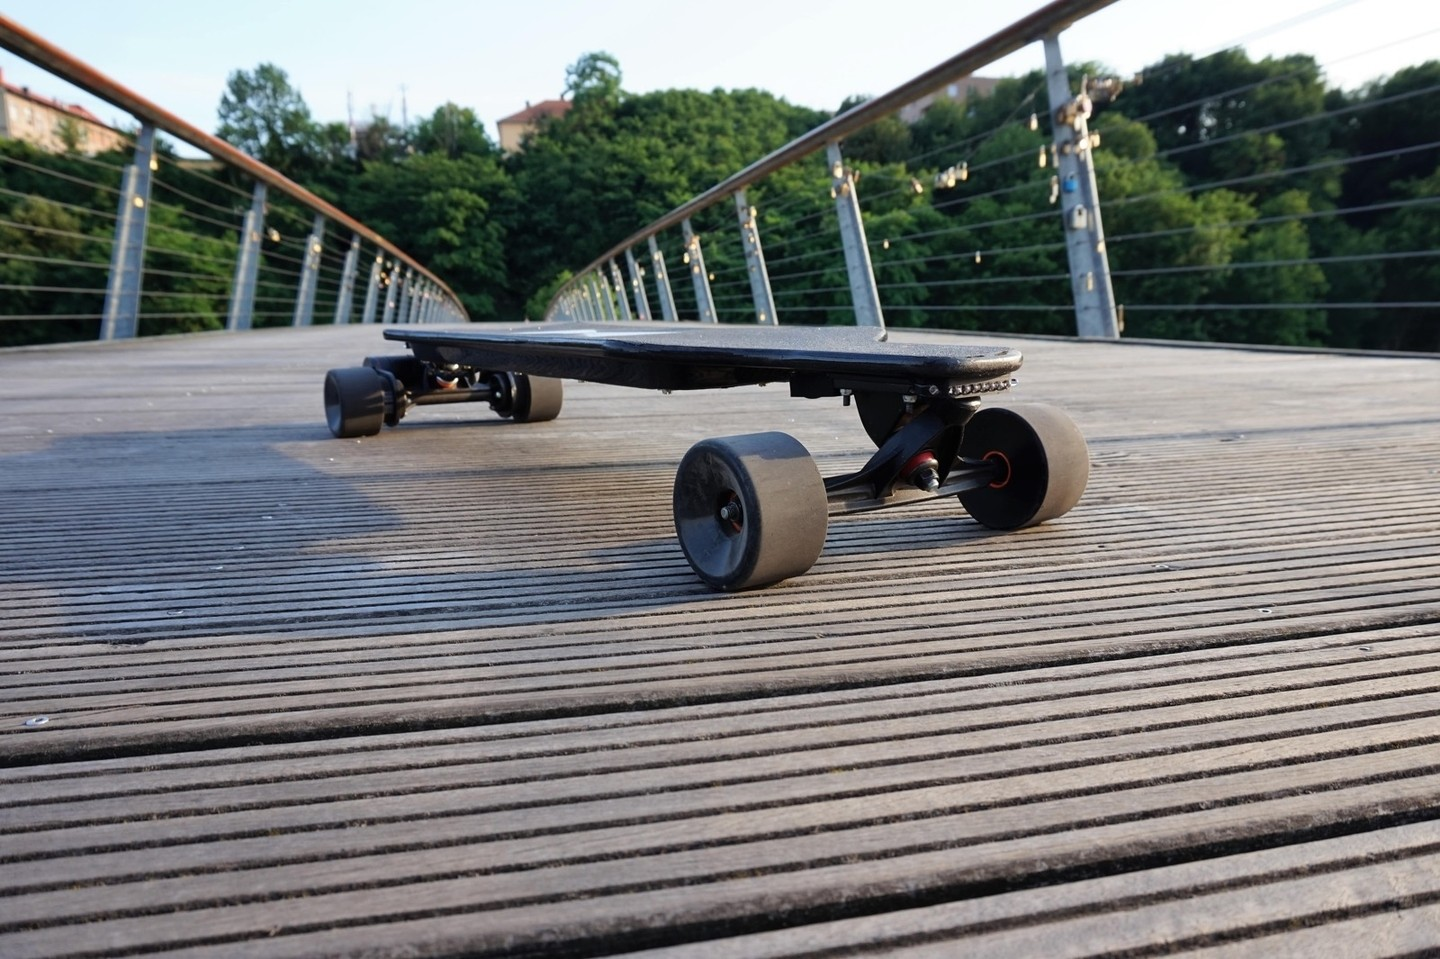 Tinboard, an Affordable Electric Longboard That Can Do Off-Road